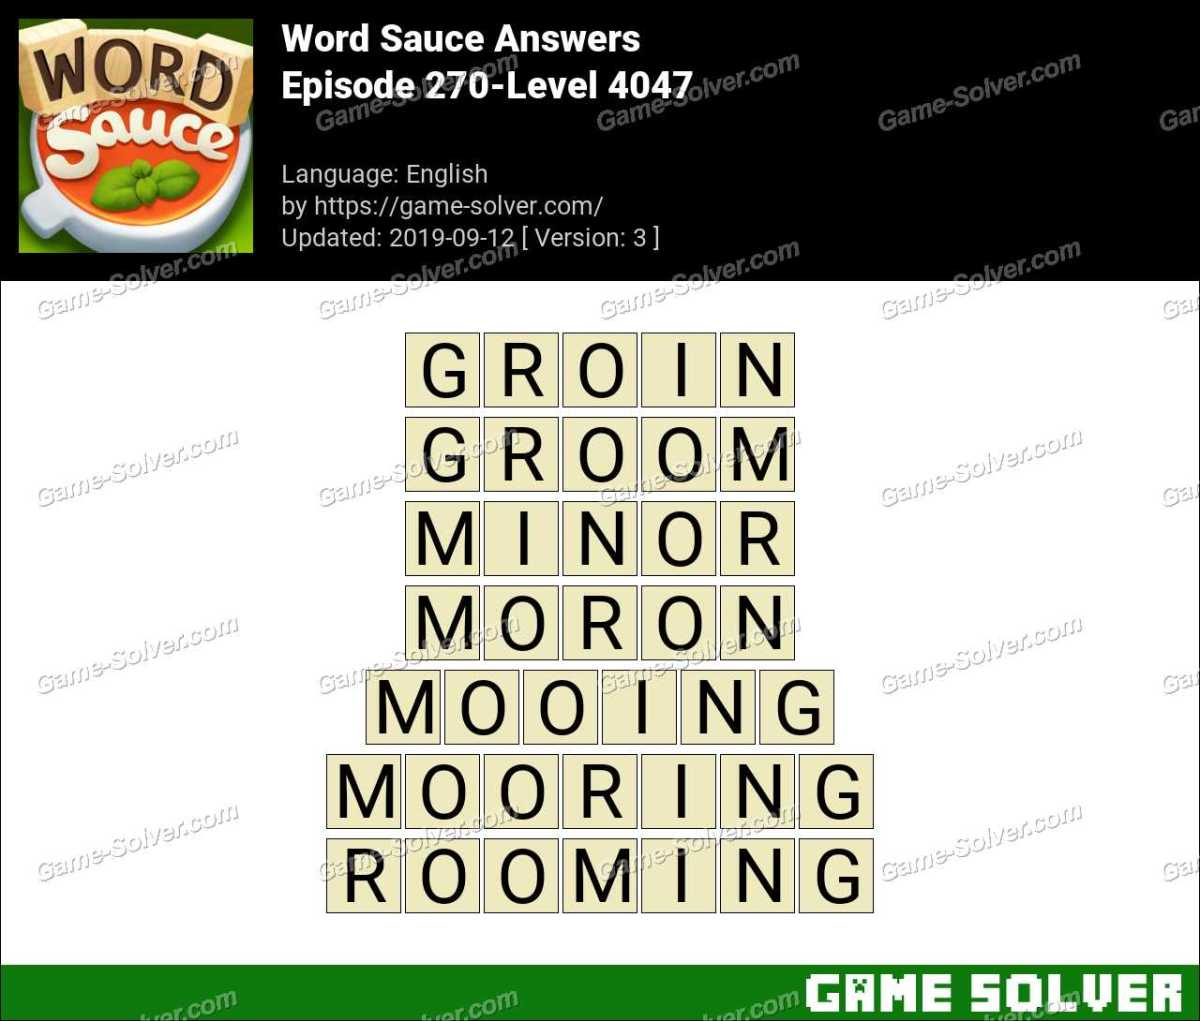 Word Sauce Episode 270-Level 4047 Answers